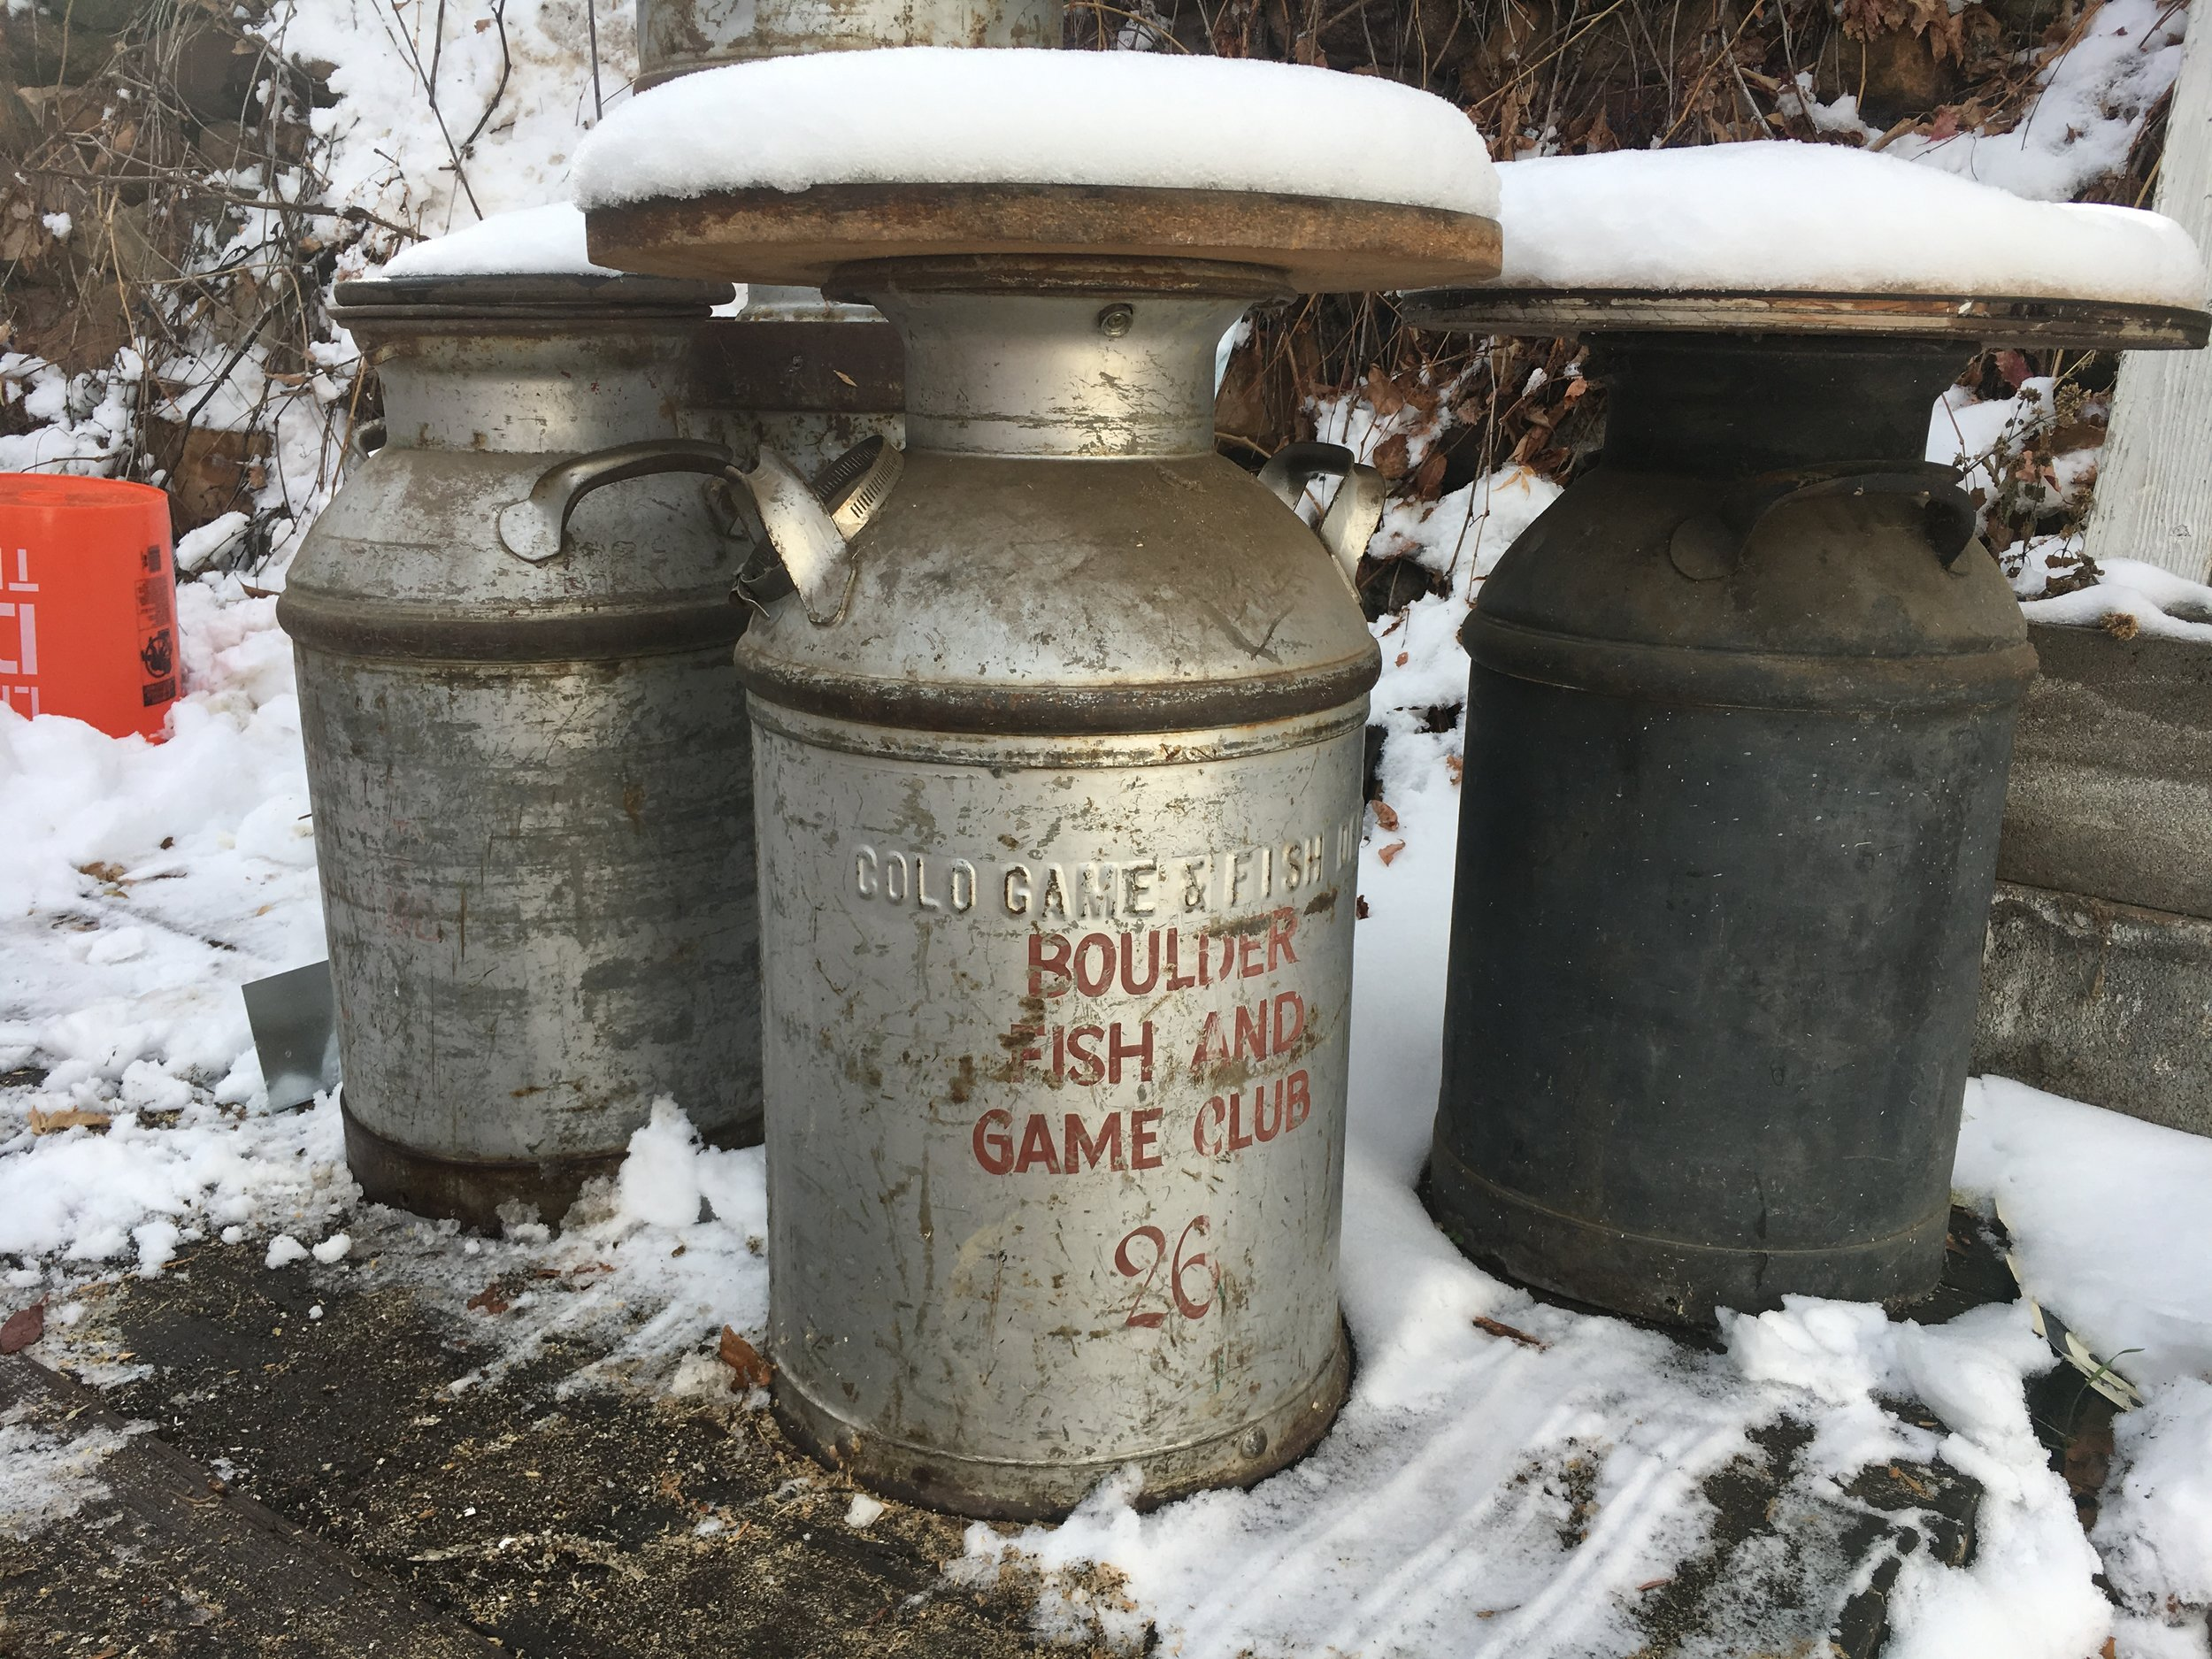 These old milk jugs were used to hold fish for the high lake stocking.